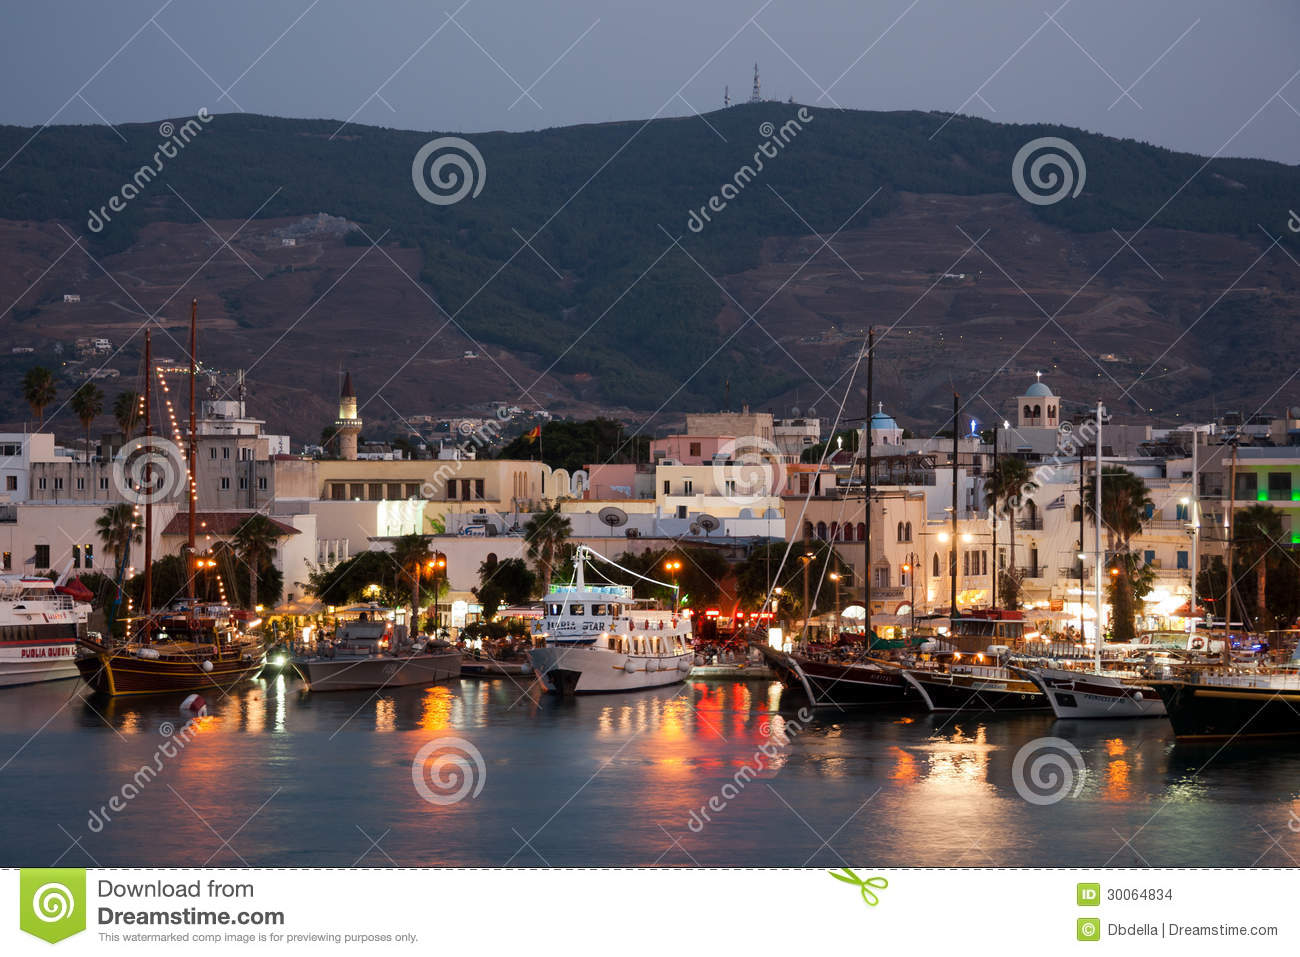 Gallery images and information kos greece nightlife - Bar Dodecanese Greece Islands Kos